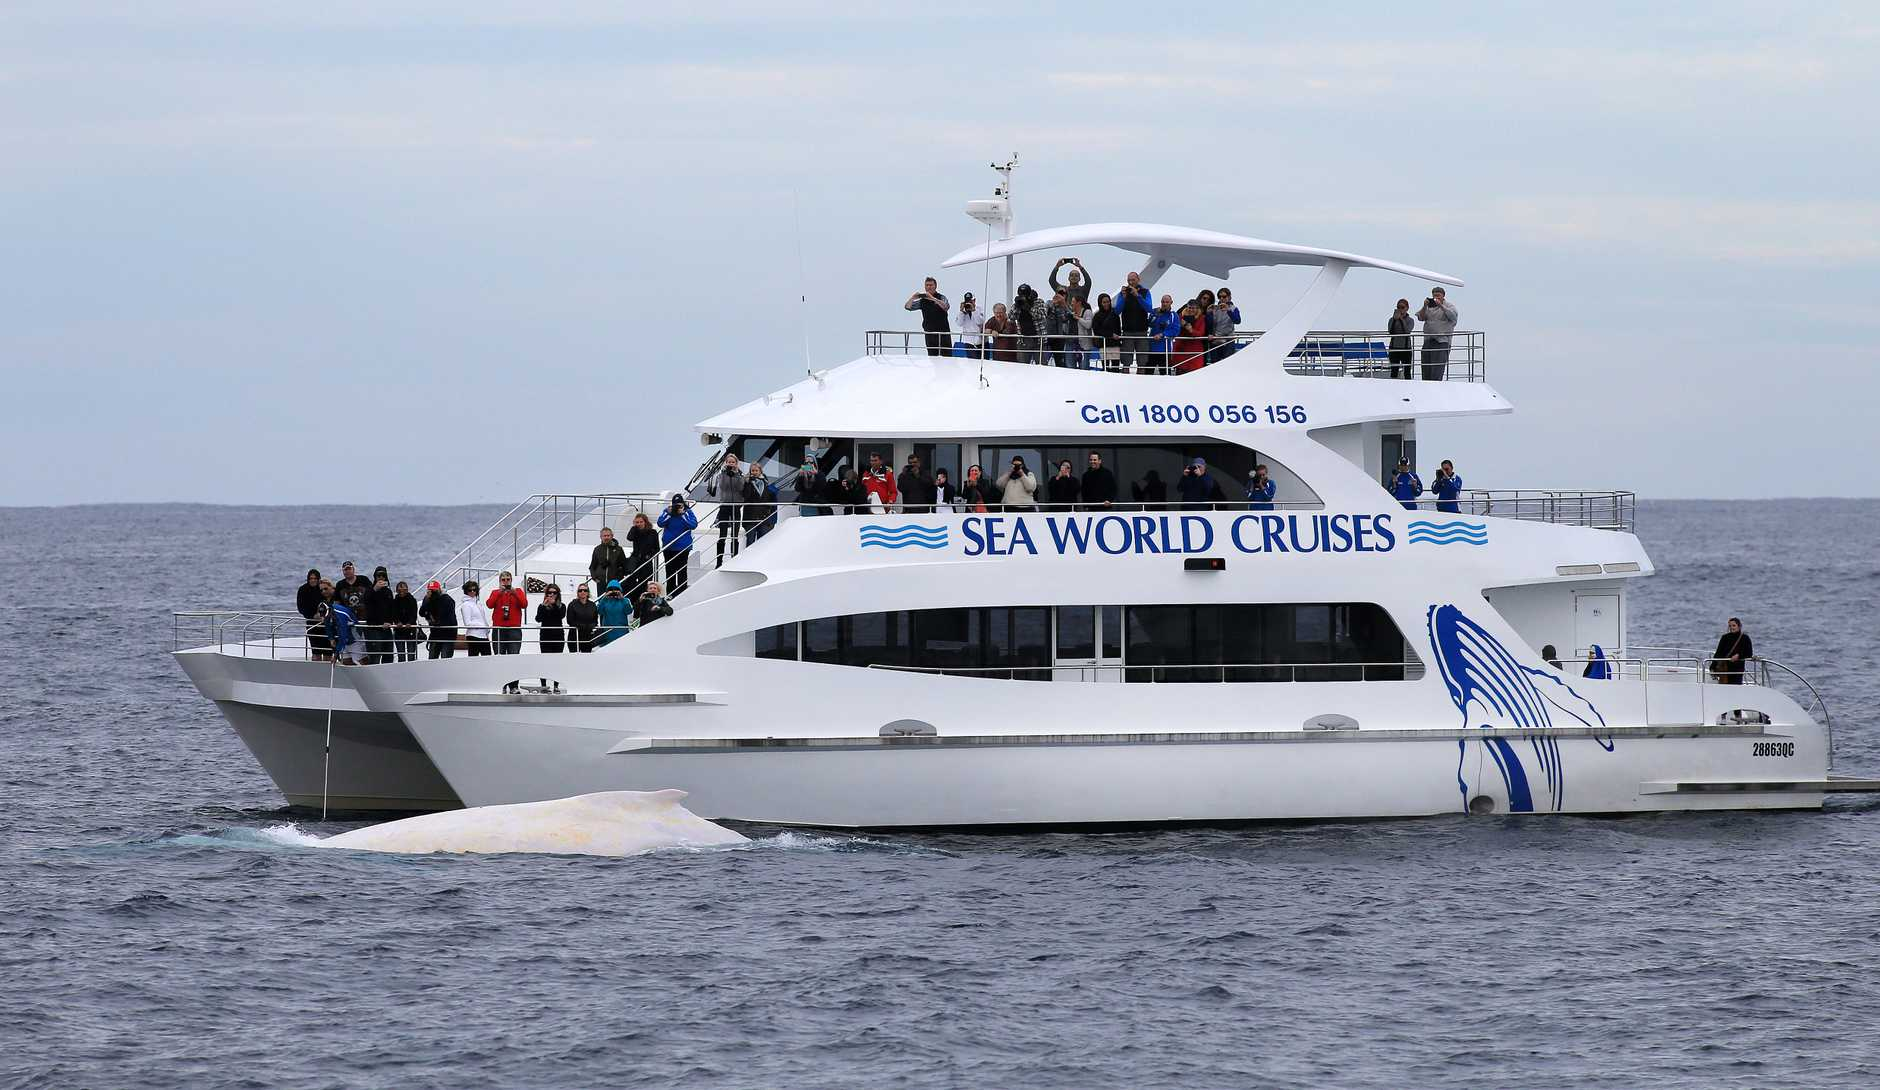 A Sea World Cruise charter vessel near Migaloo yesterday, off the Tweed Coast.